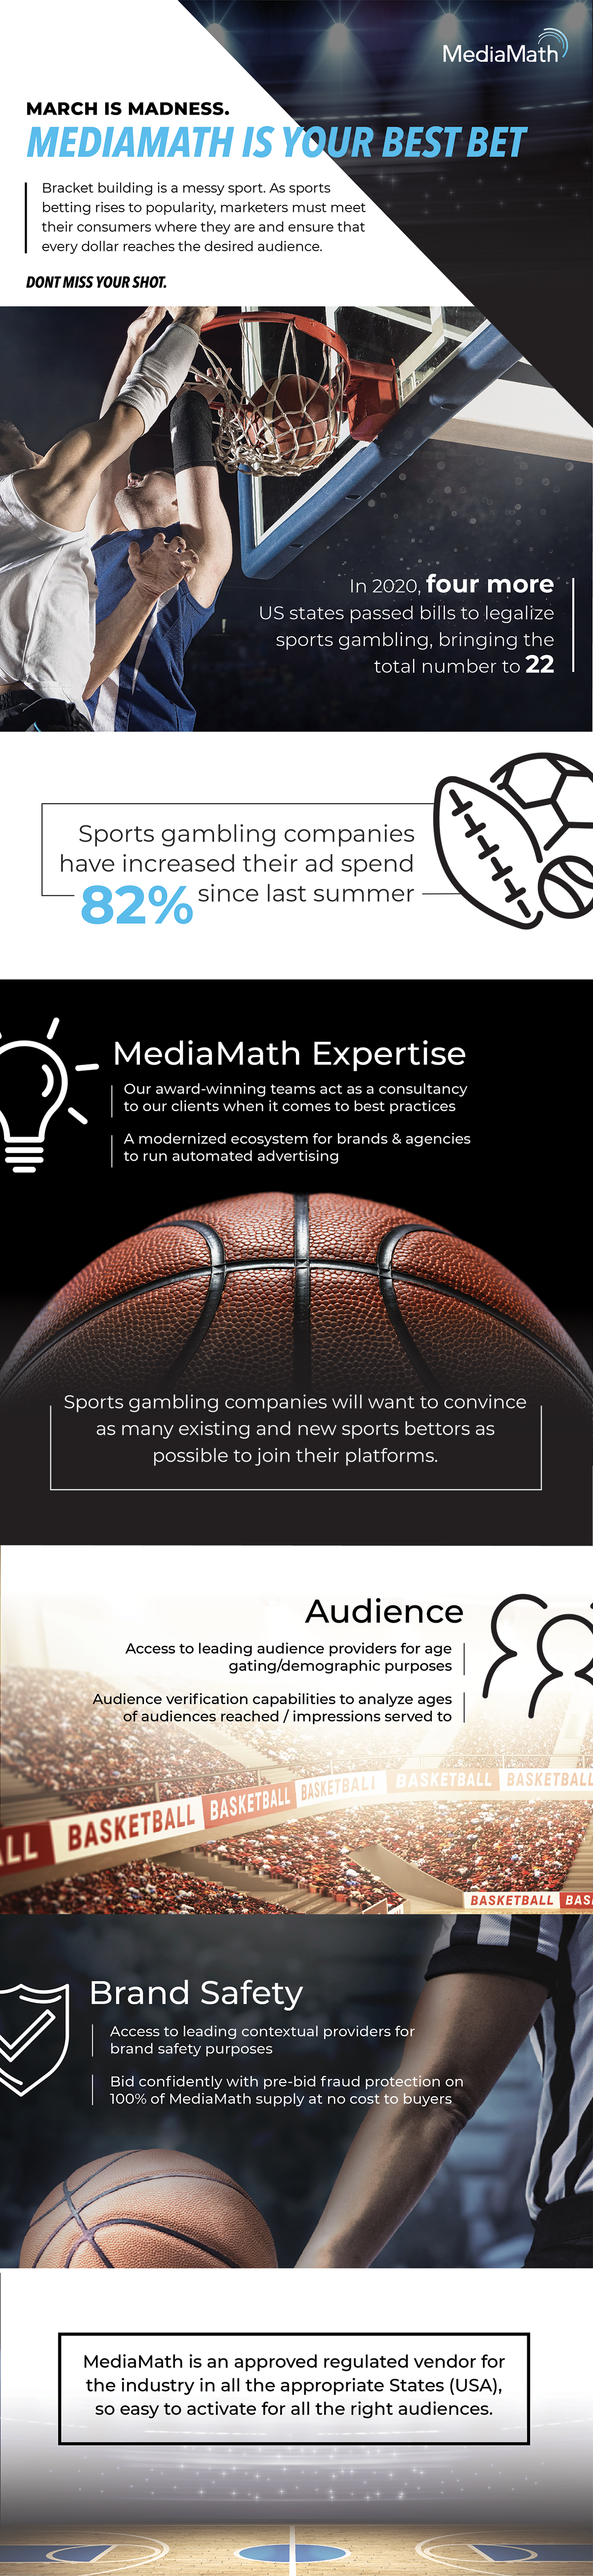 March is Madness. MediaMath is your Best Bet.